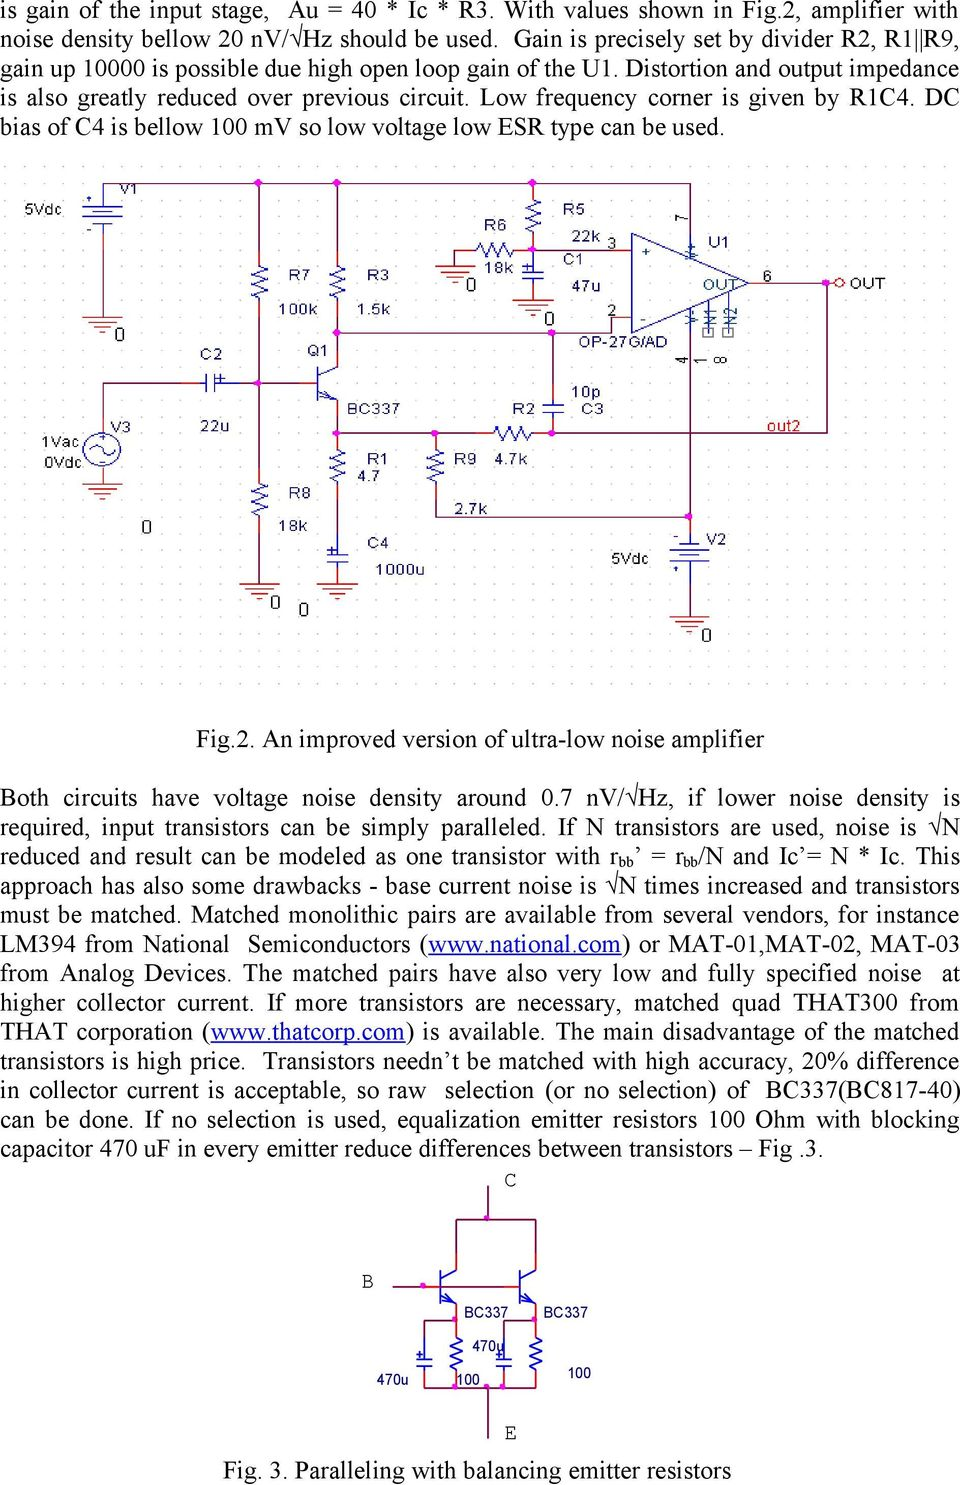 Design Of Ultra Low Noise Amplifiers Pdf Circuit Dynamic Power Amplifier With Ic Dmos Tda7294 Bridge Frequency Corner Is Given By R1c4 Dc Bias C4 Bellow 1 Mv